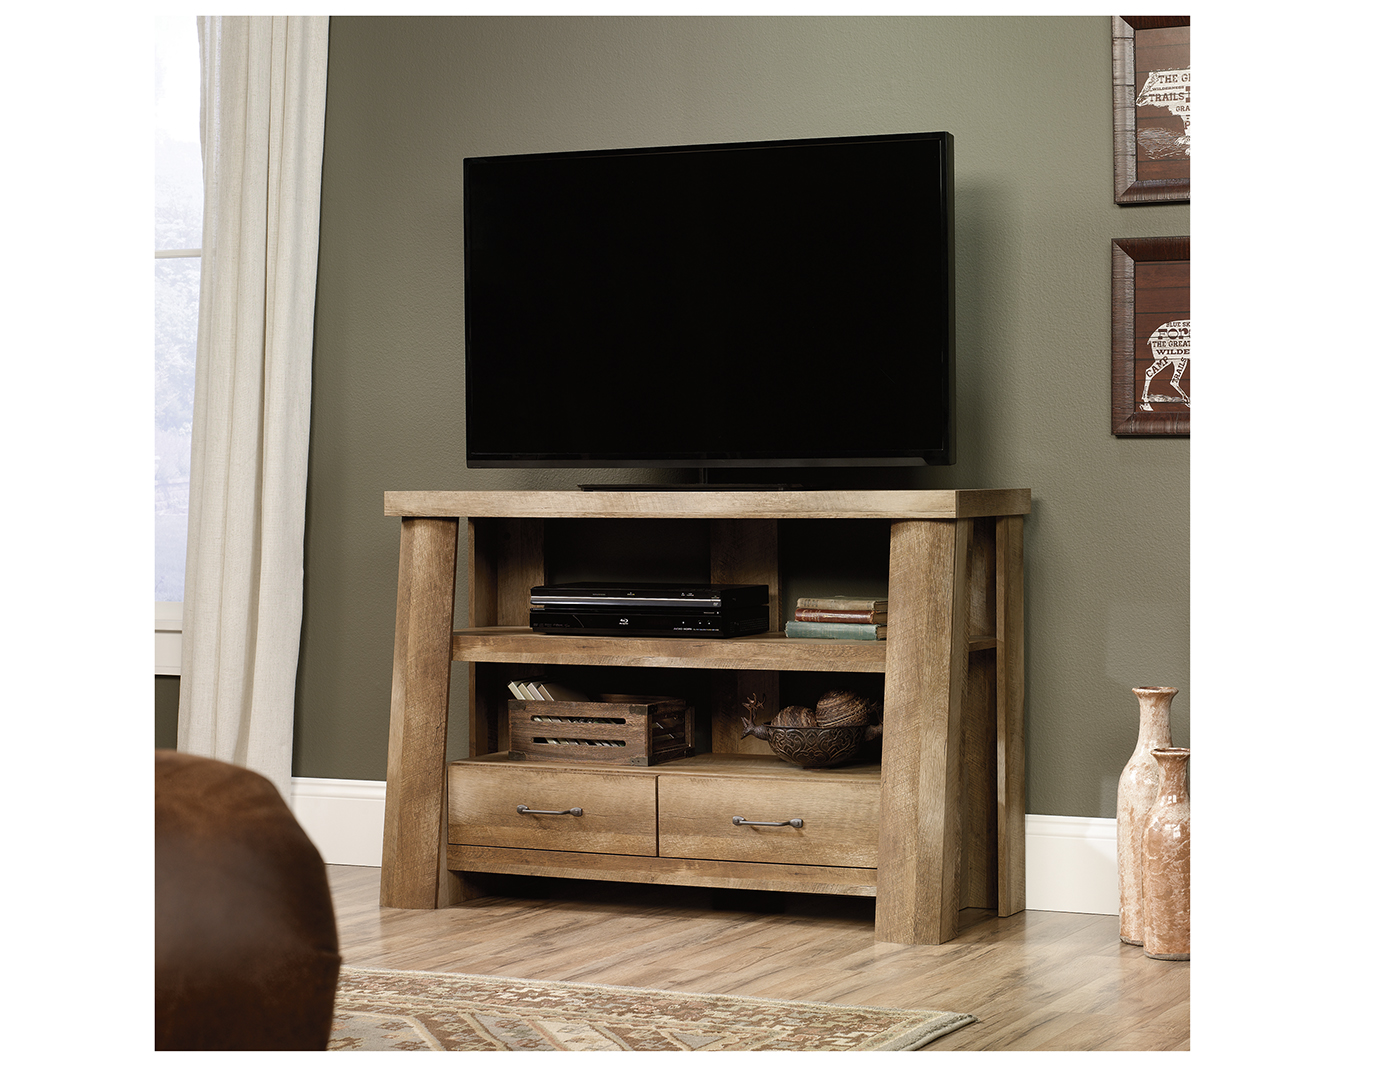 "Boone Mountain Anywhere 49"" Entertainment Console"